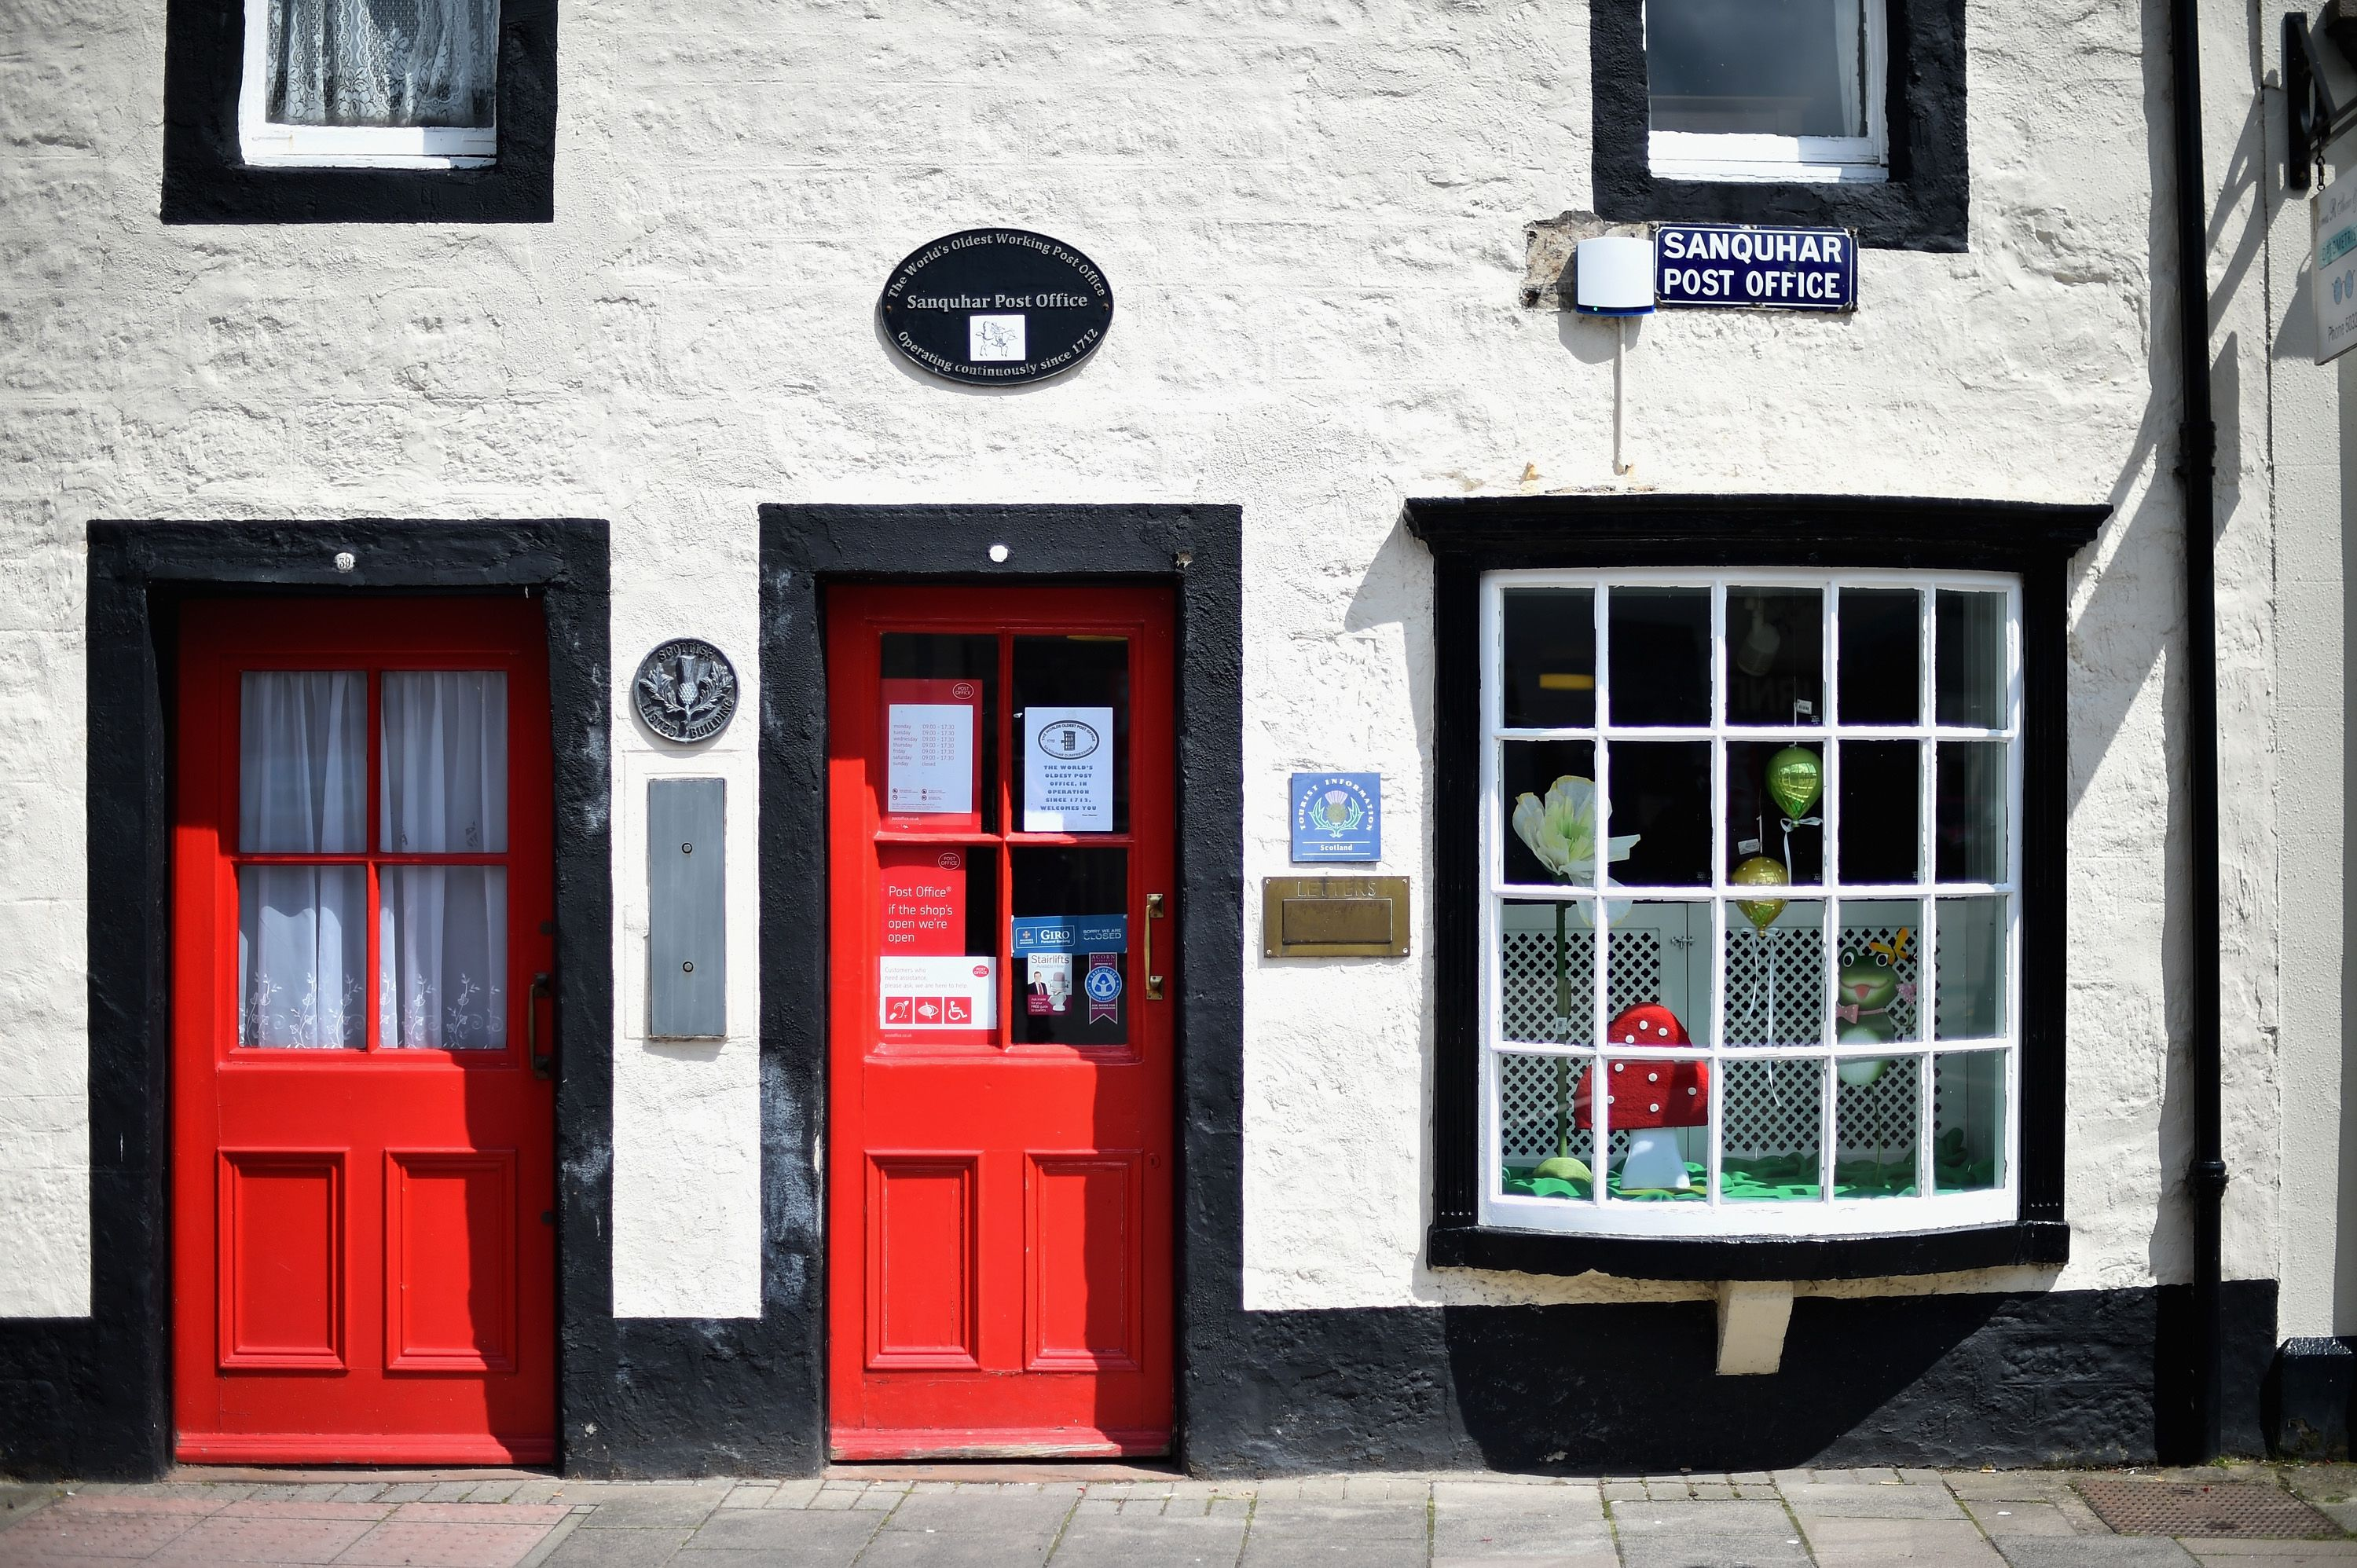 The world's oldest post office, Sanquhar Post Office in Scotland, up for sale